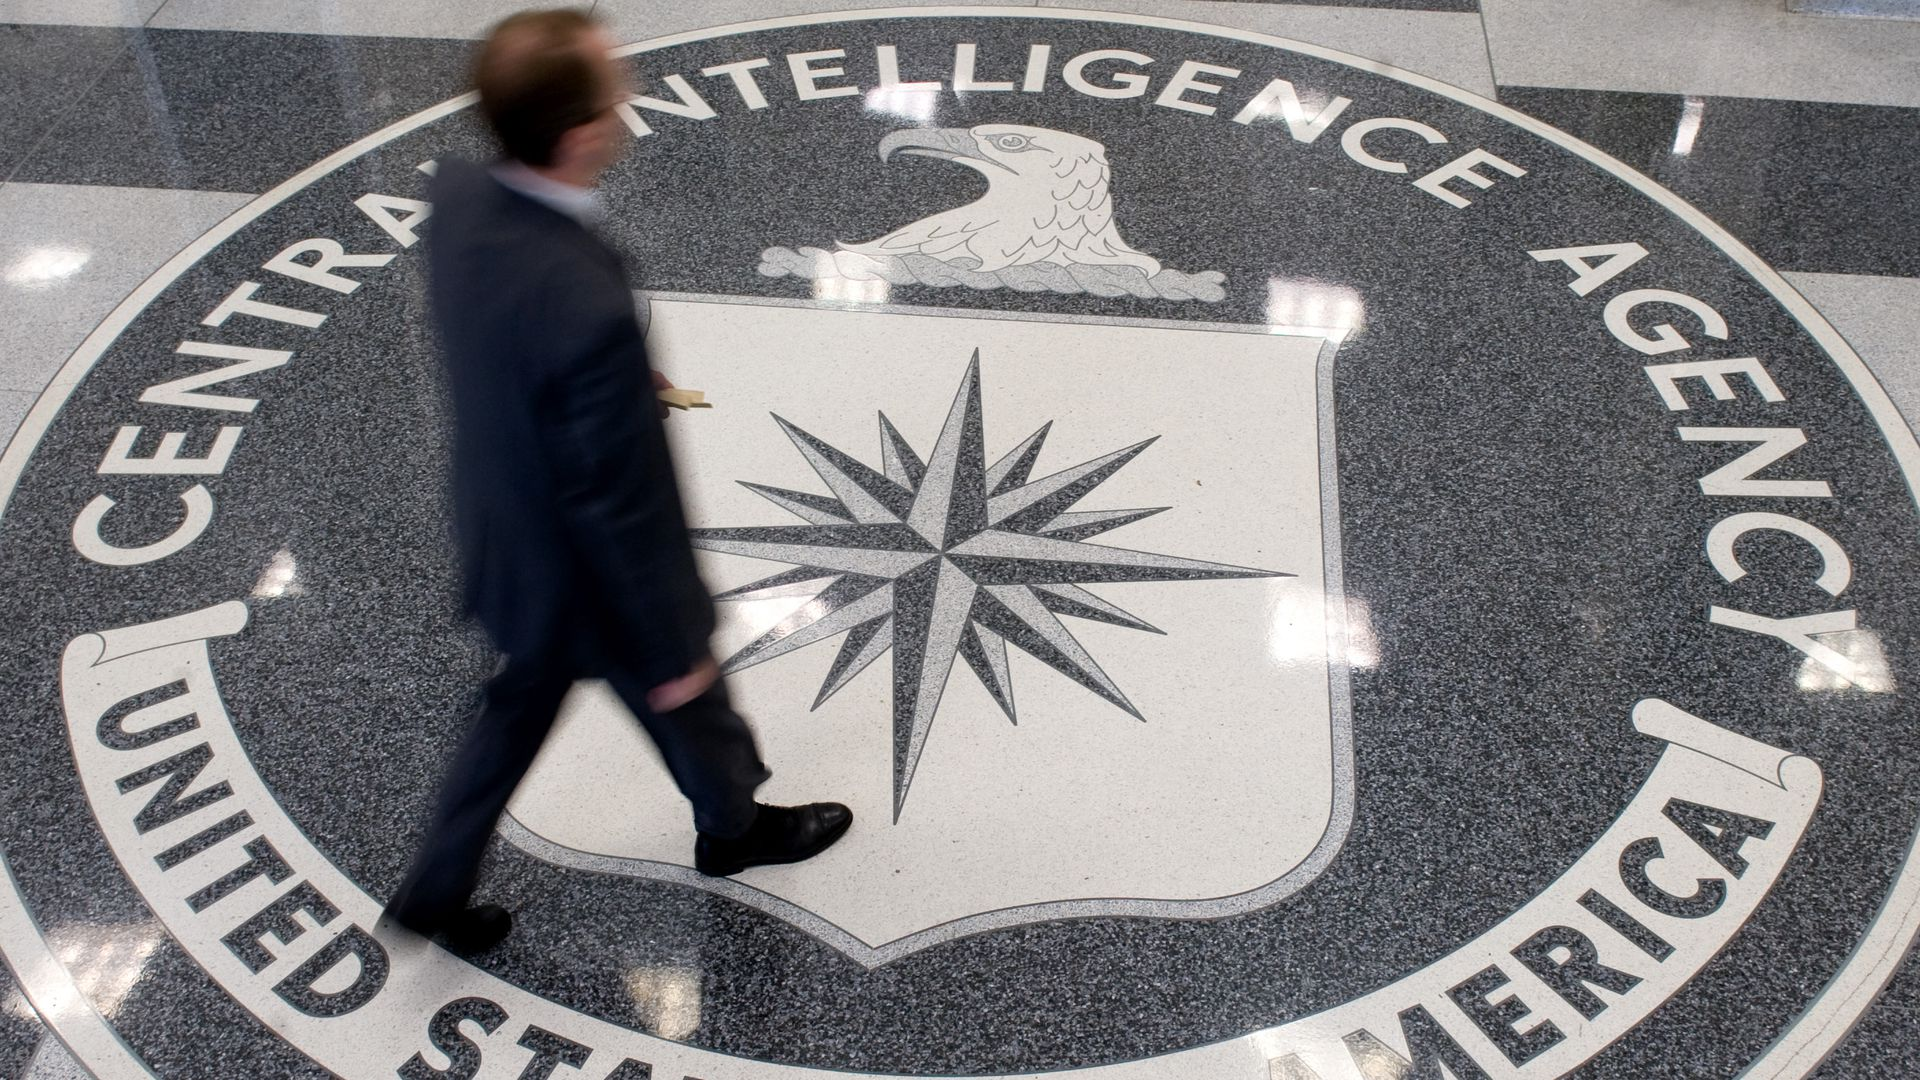 Ex-CIA officer found guilty of espionage - Axios